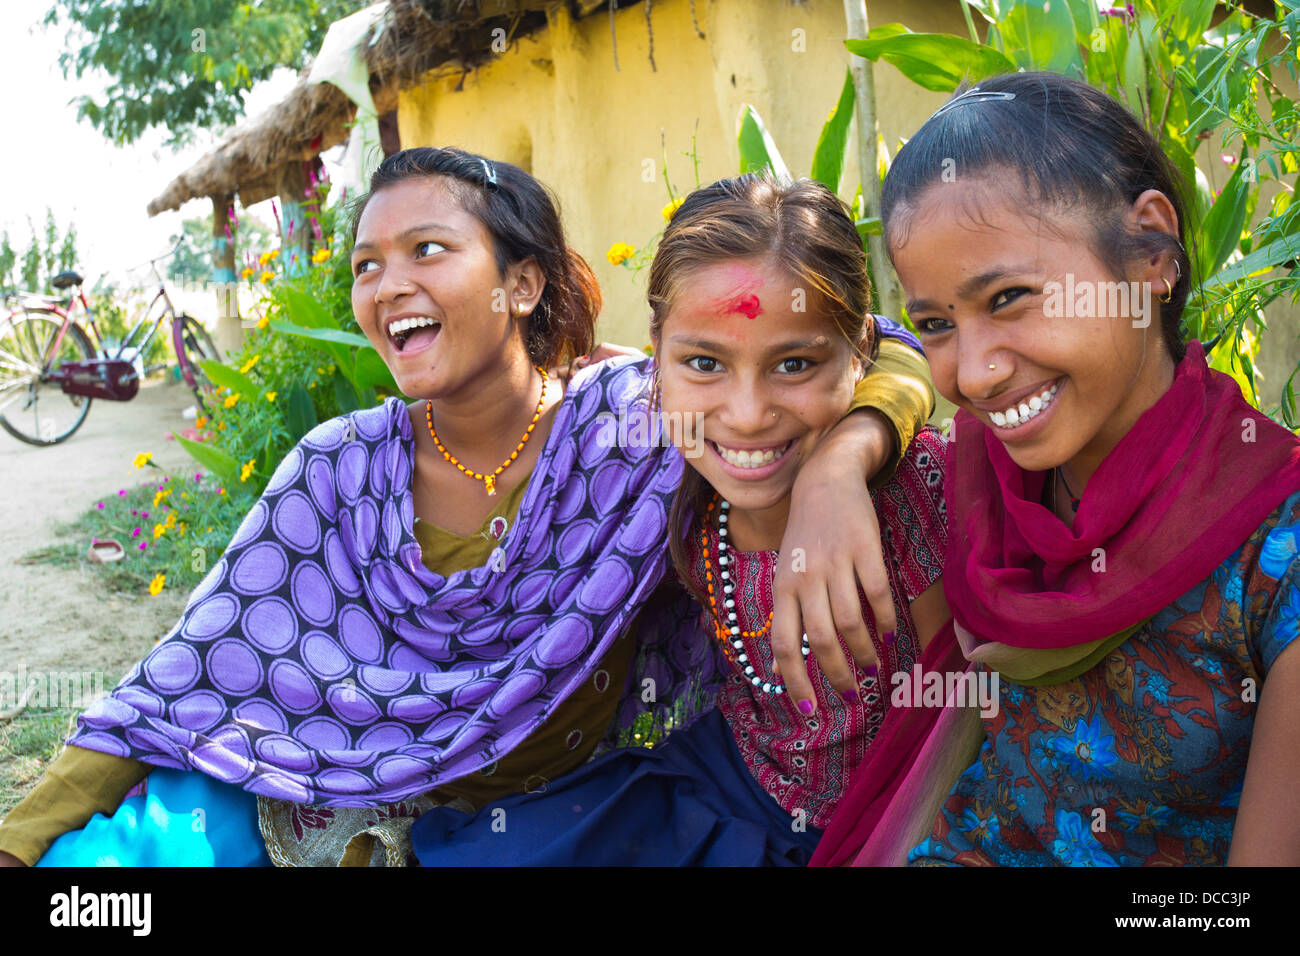 Rural nepal stock photos rural nepal stock images alamy three happy young nepalese girls smiling in a rural terai village nepal stock image ccuart Images